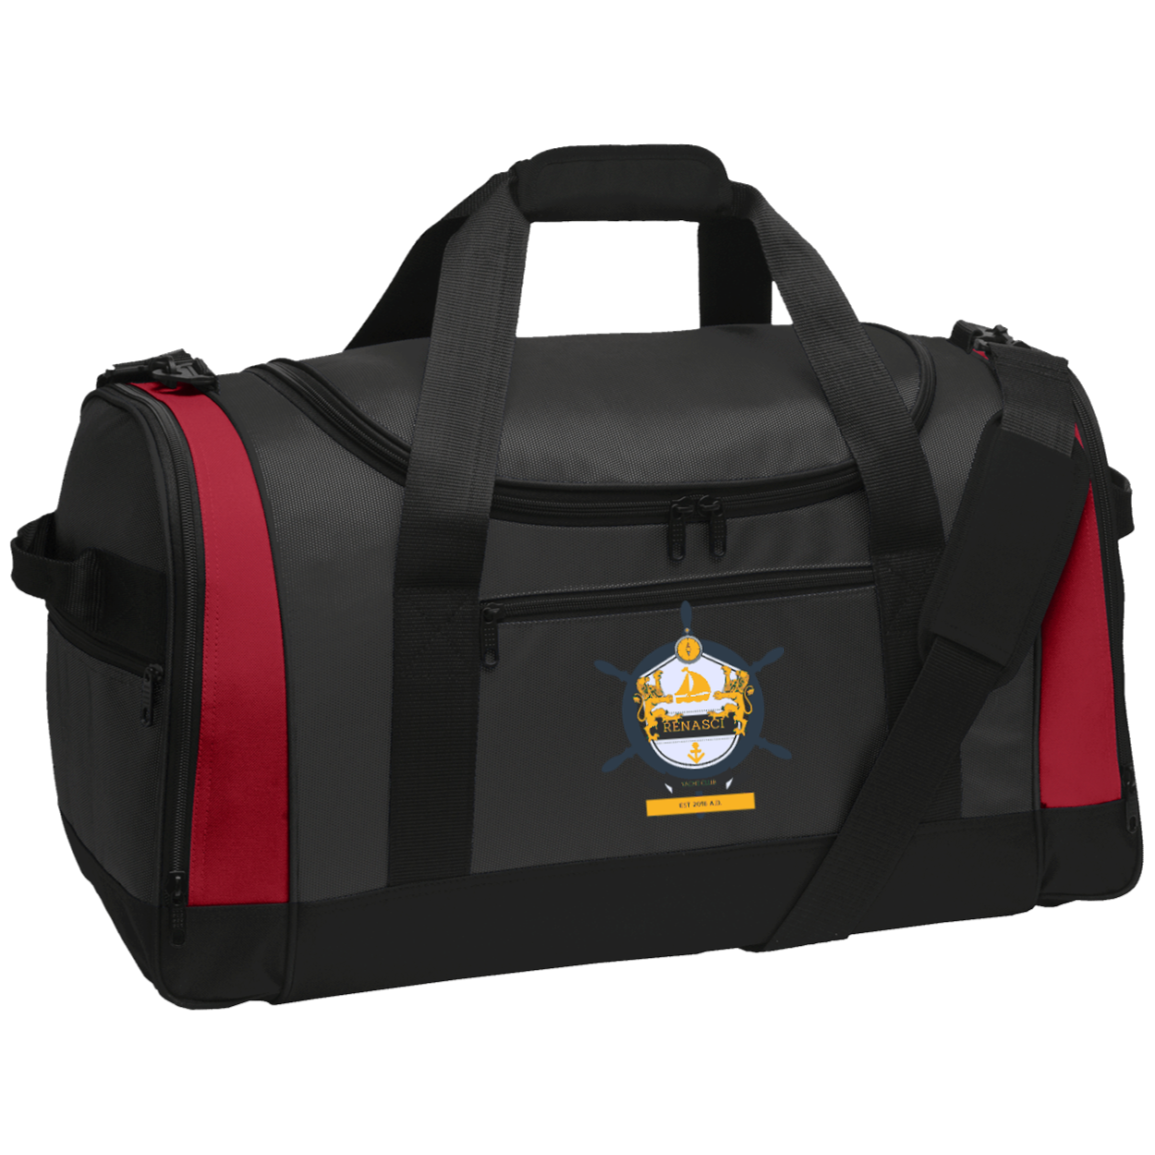 Yacht Club Travel Sports Duffel